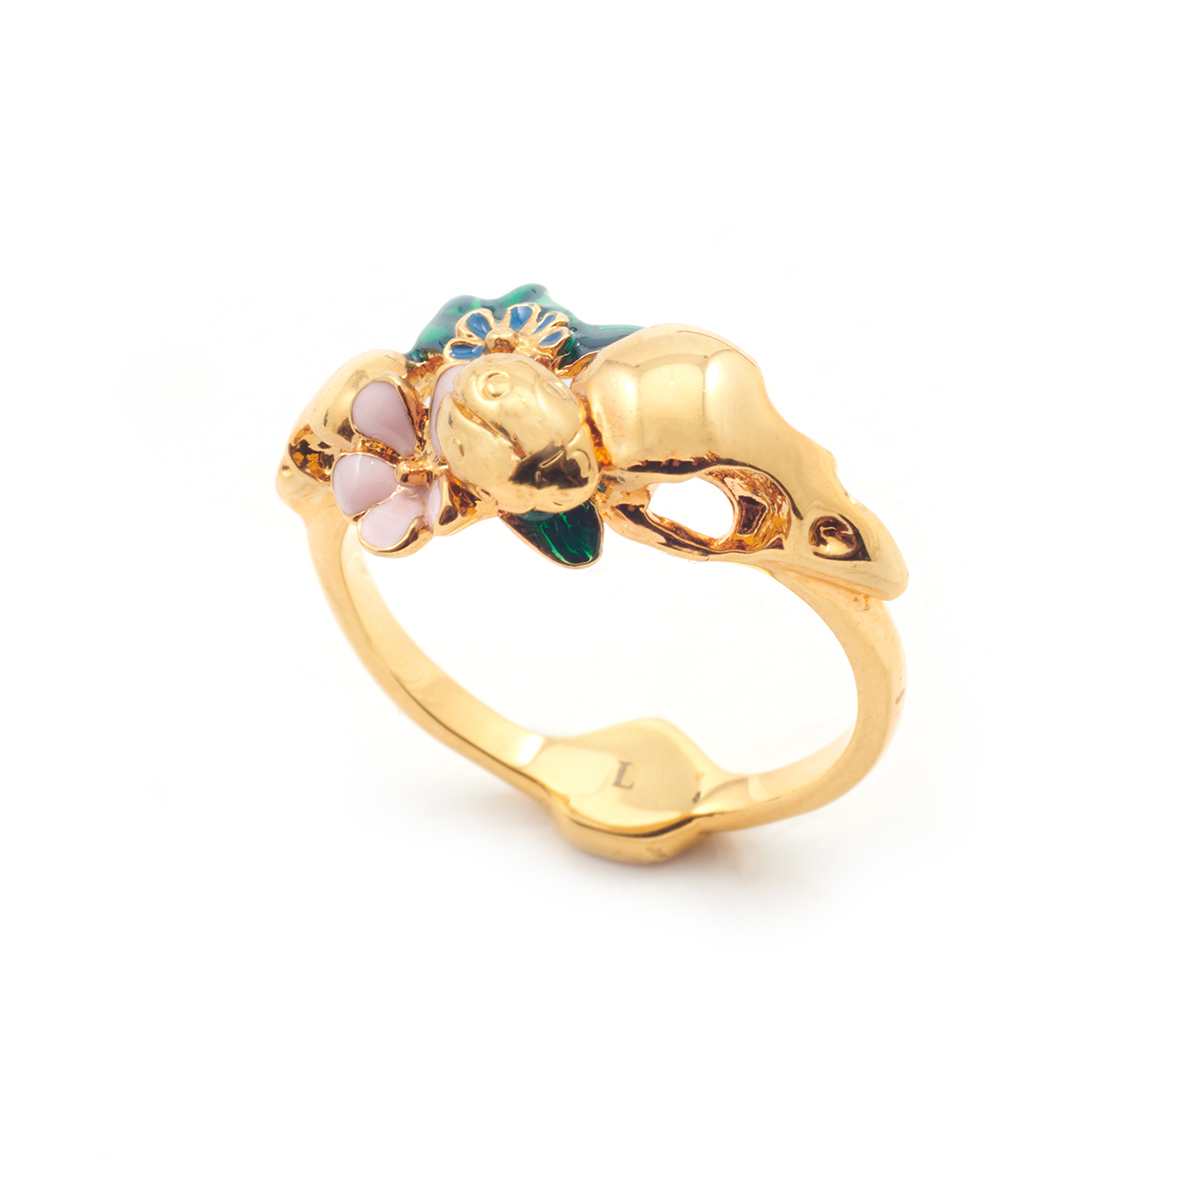 Archive Bird Skull & Floral Ring - Gold - Size Large